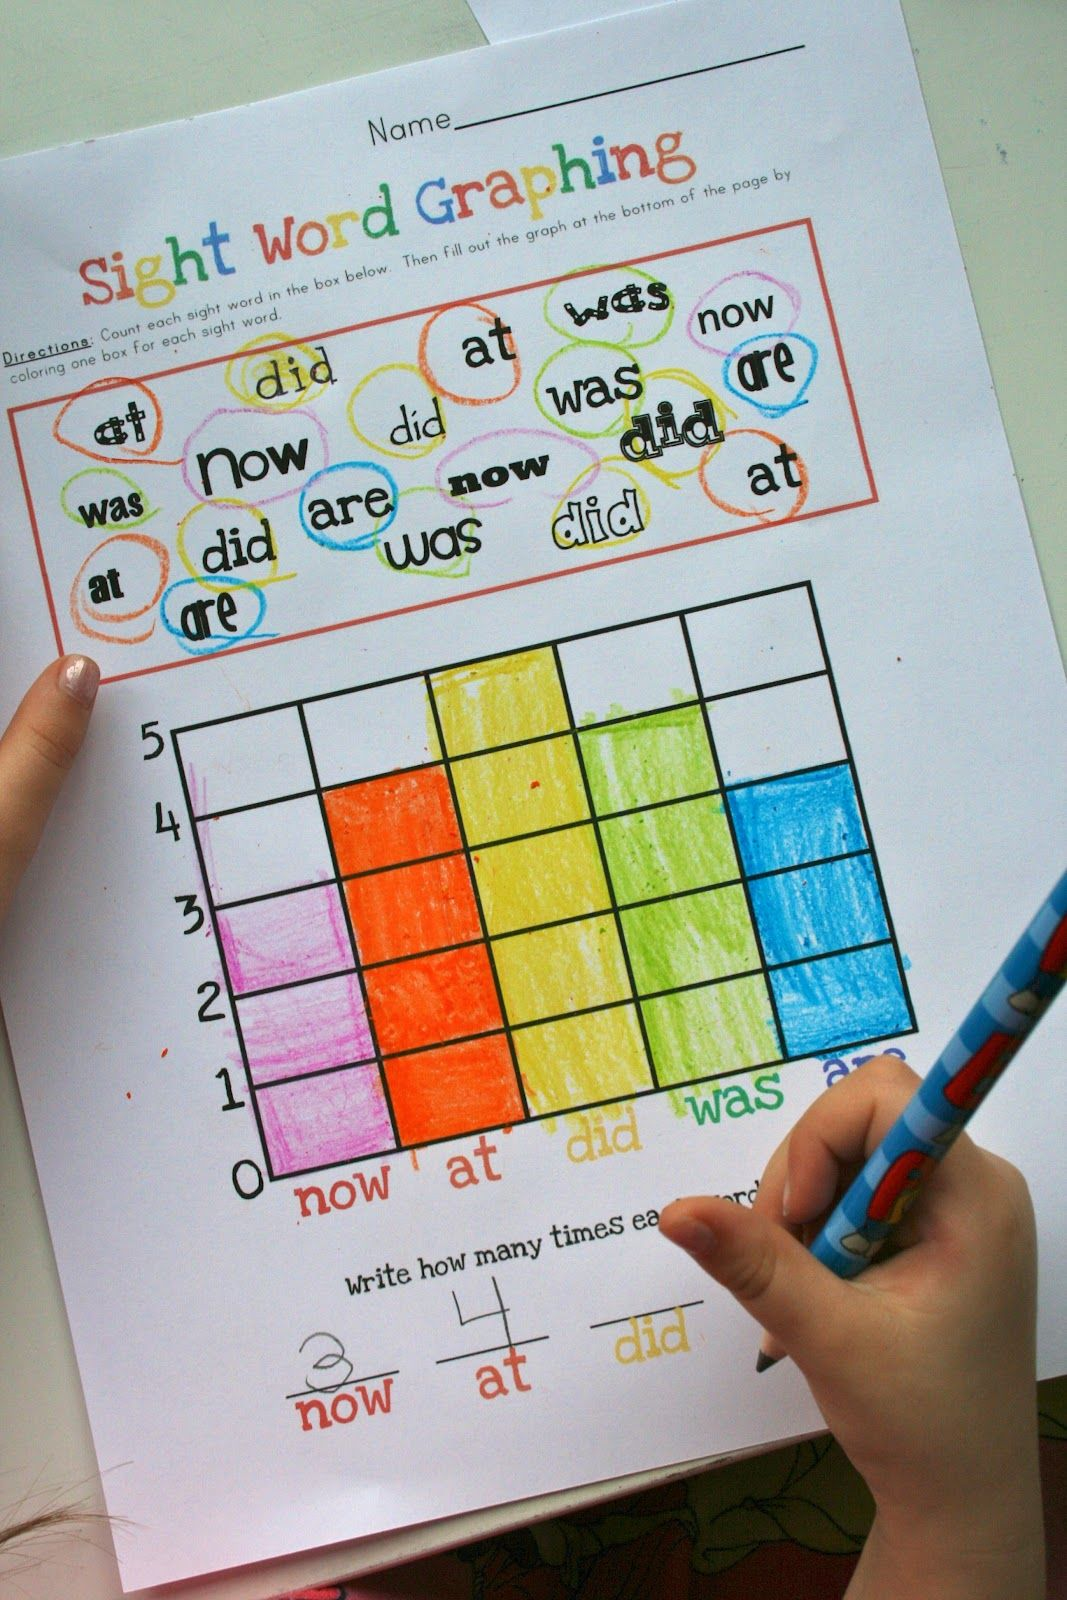 Graphing Sight Words With Different Fonts So They Can